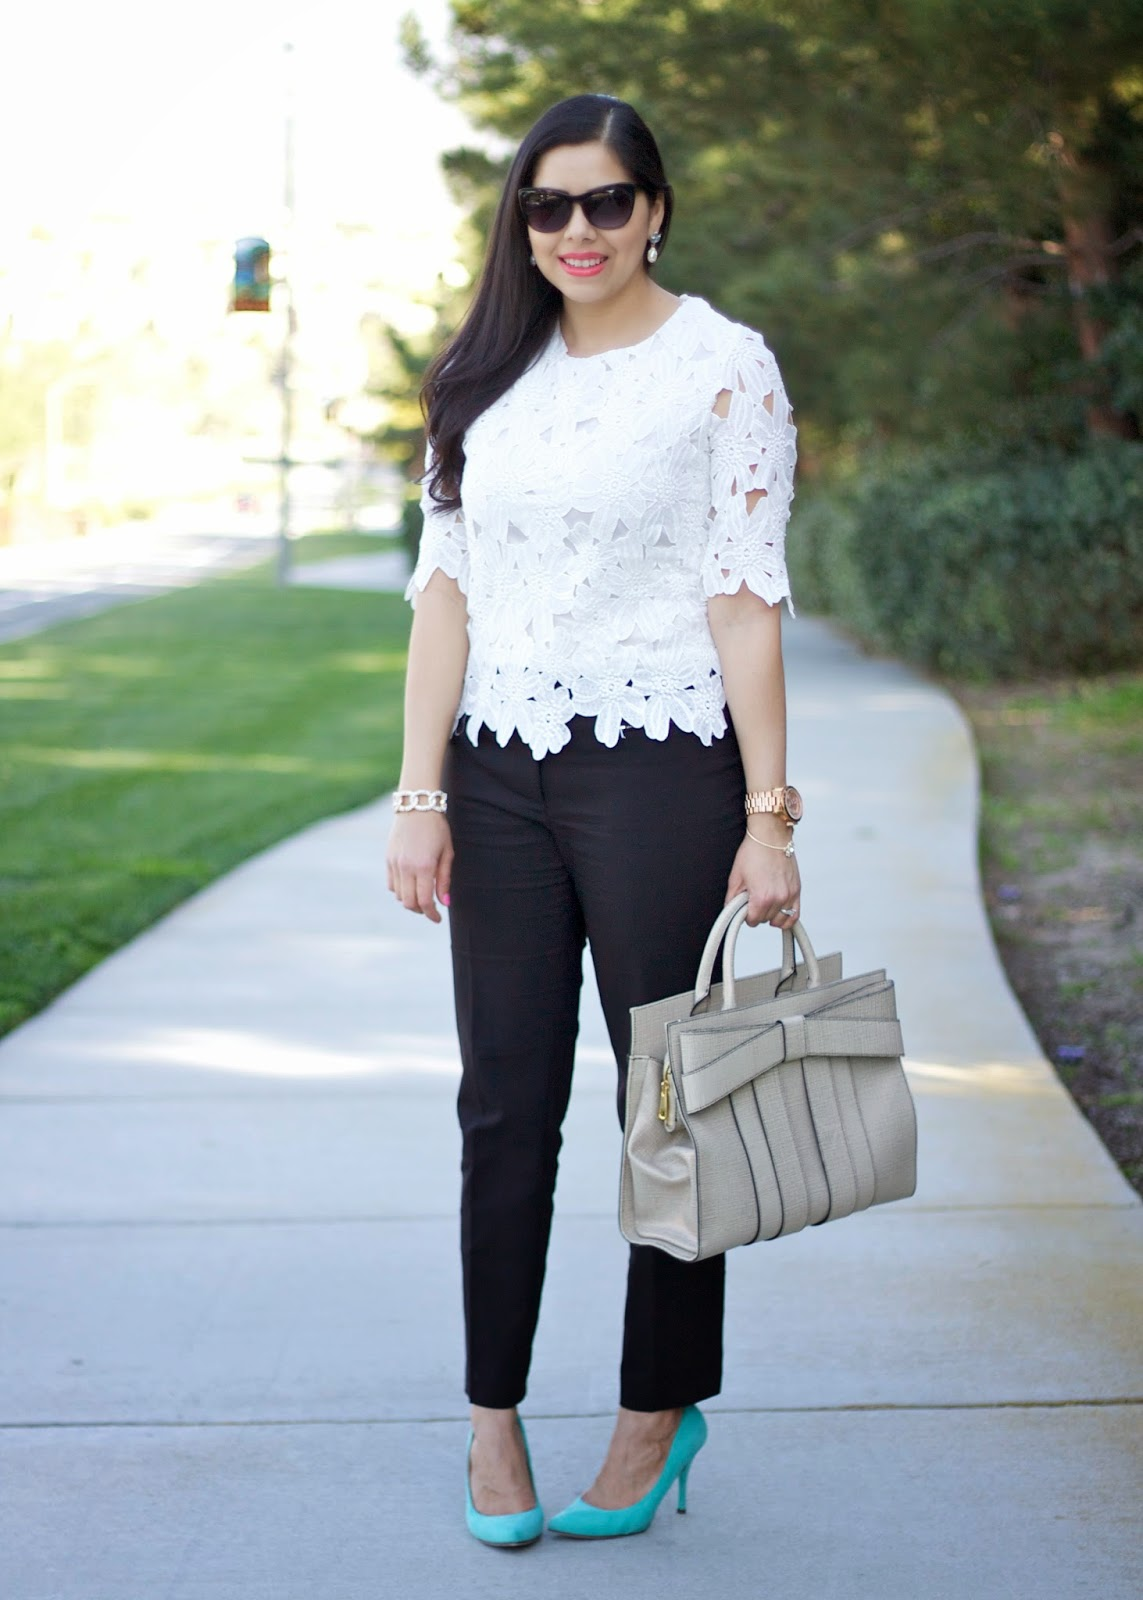 Cute Baby Shower Outfit Part - 49: Brunch Outfit, Bridal Shower Outfit, What To Wear To A Baby Shower, White